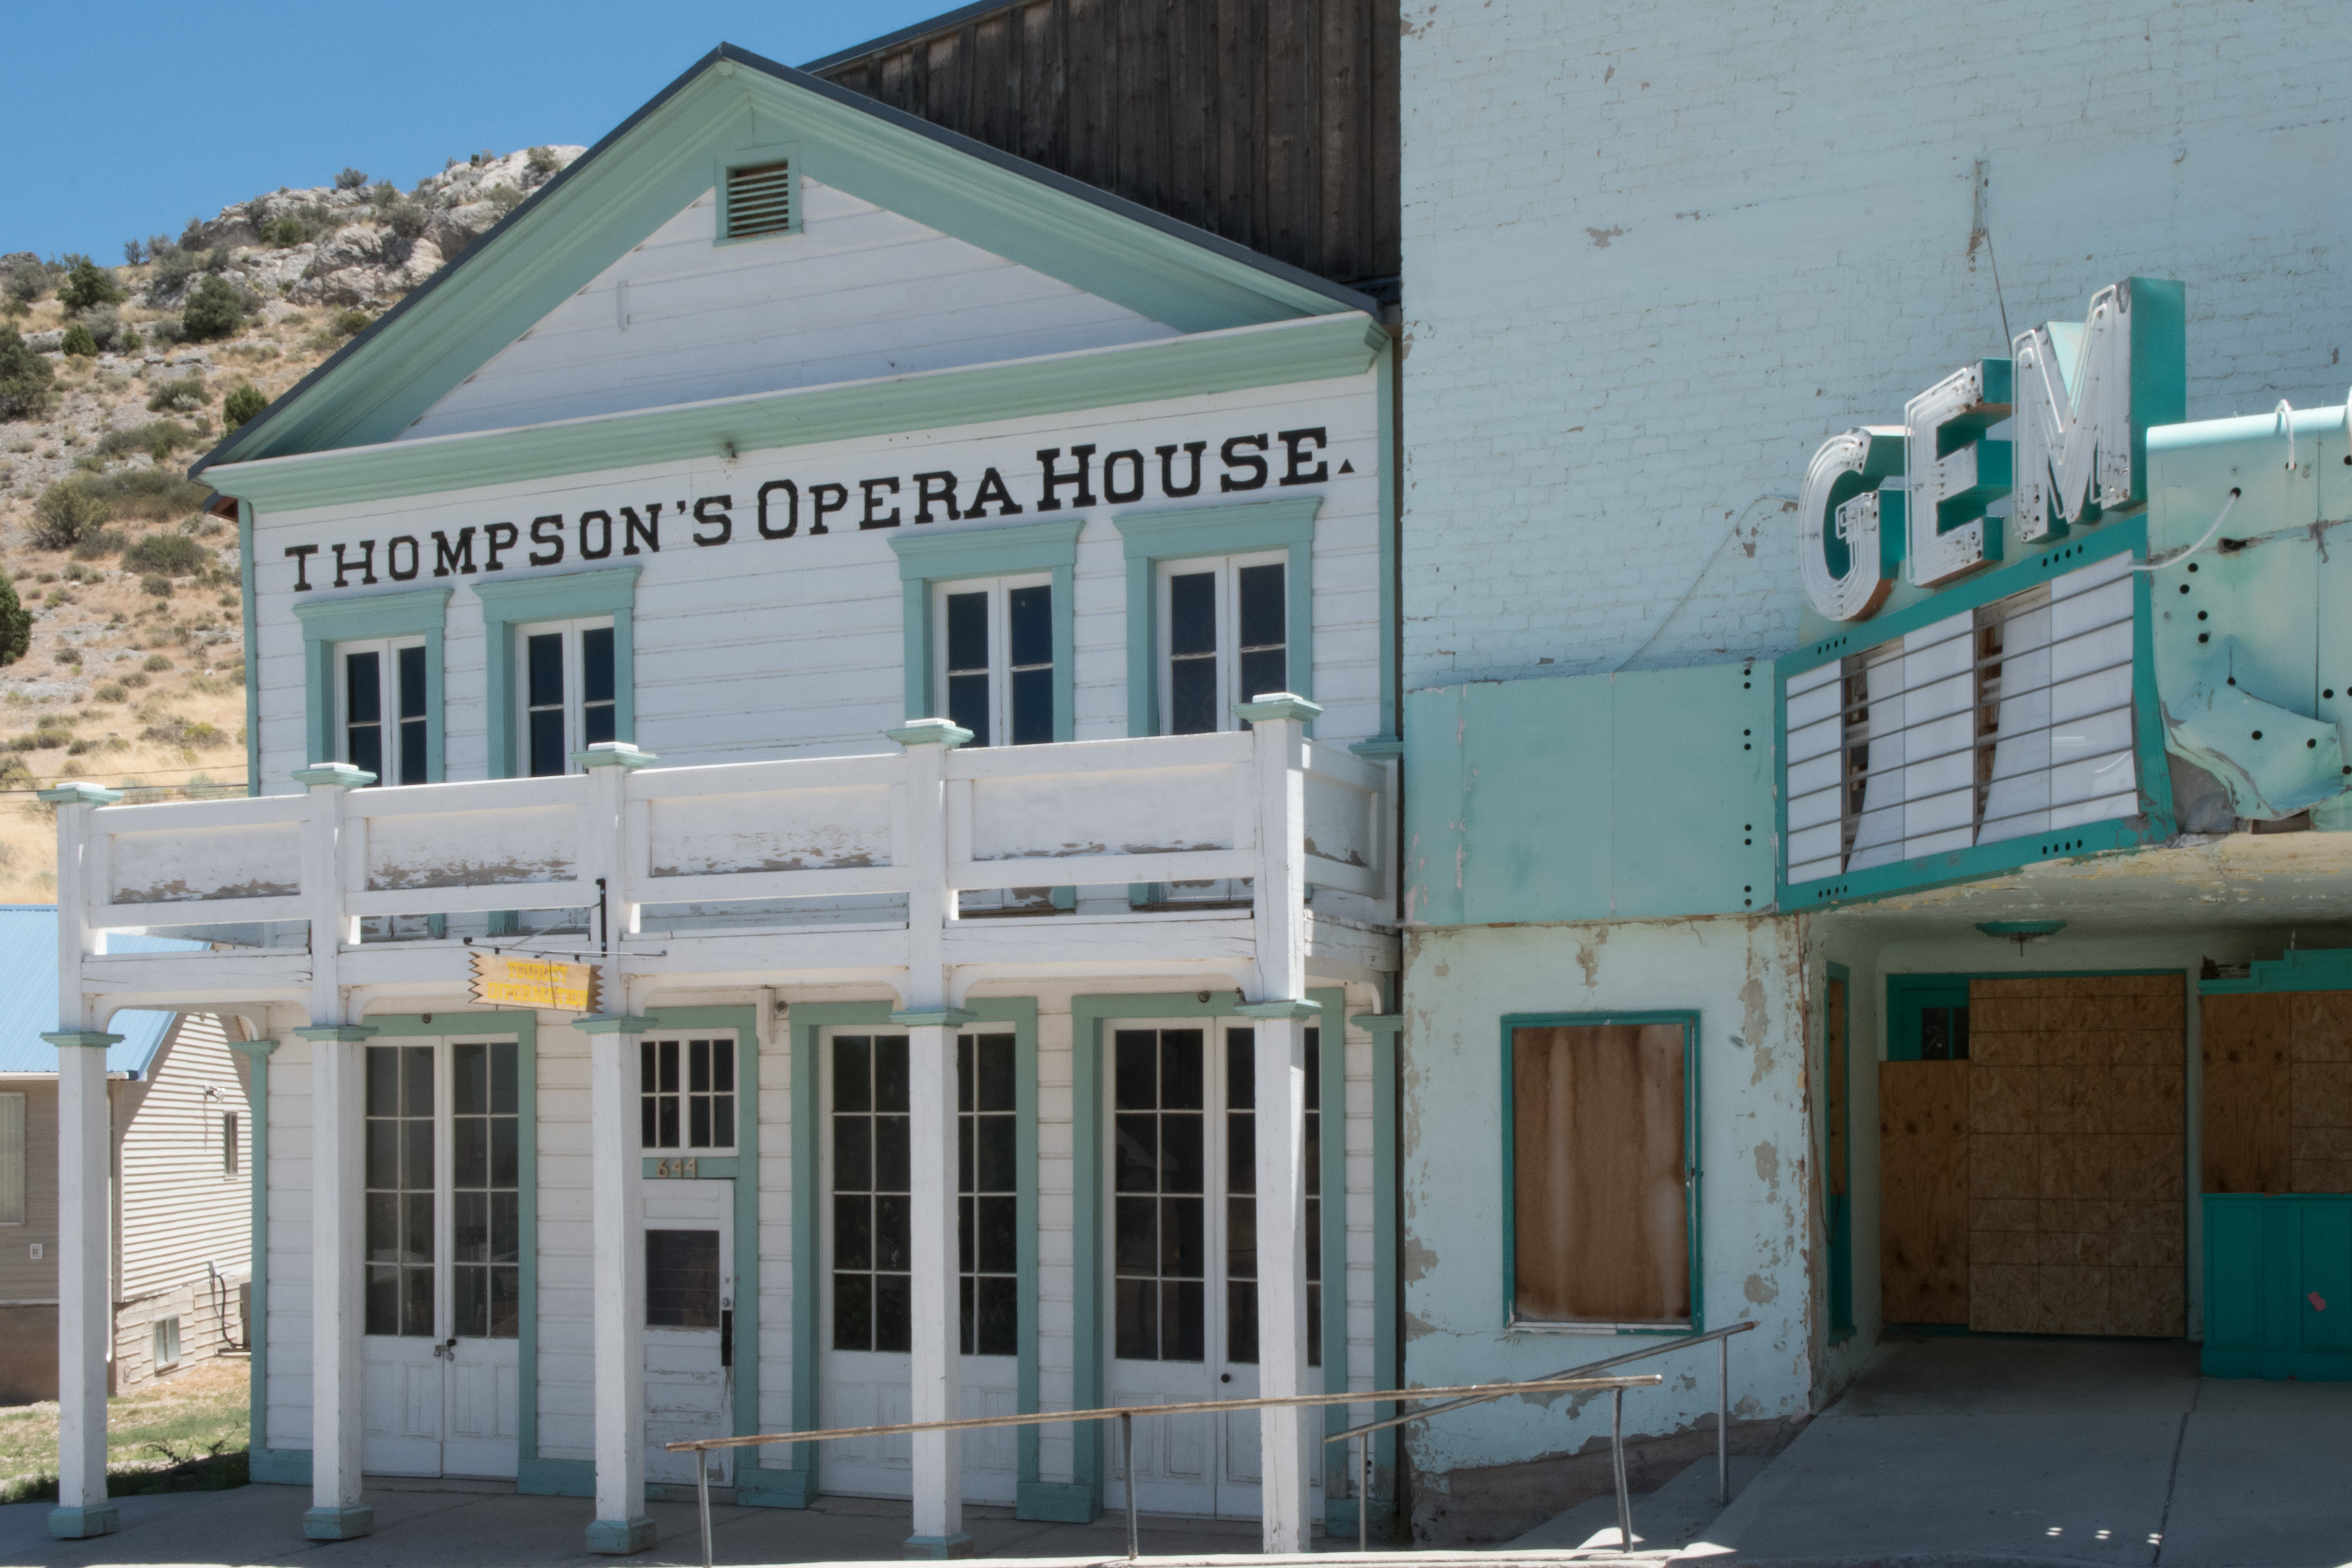 Thompsons Opera House, Pioche, Nevada, July 2016 | Photo by Jim Lillywhite, St. George News